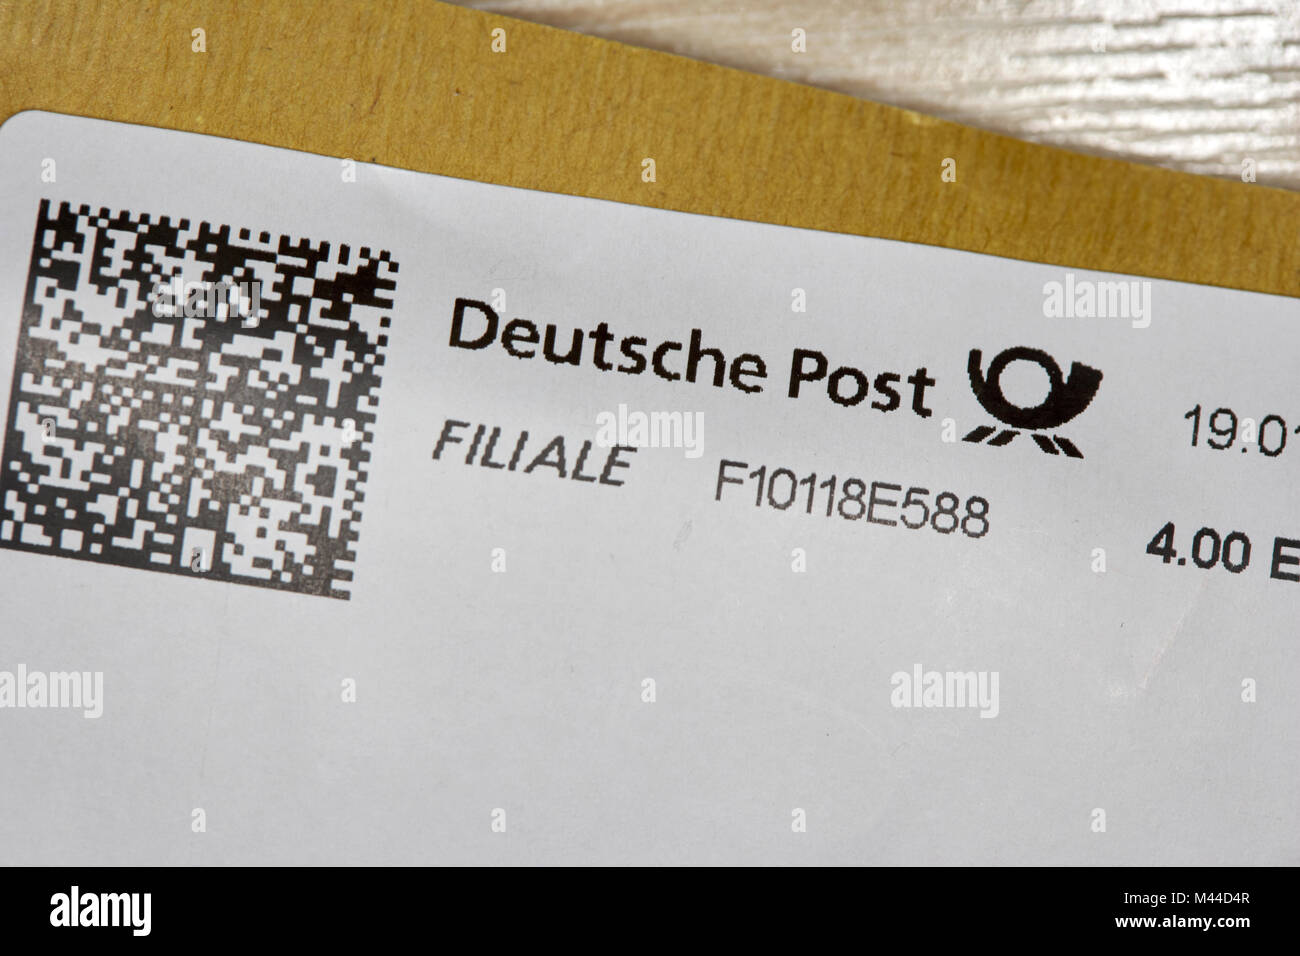 deutsche post printed stamp including qr code on a package posted in germany Stock Photo